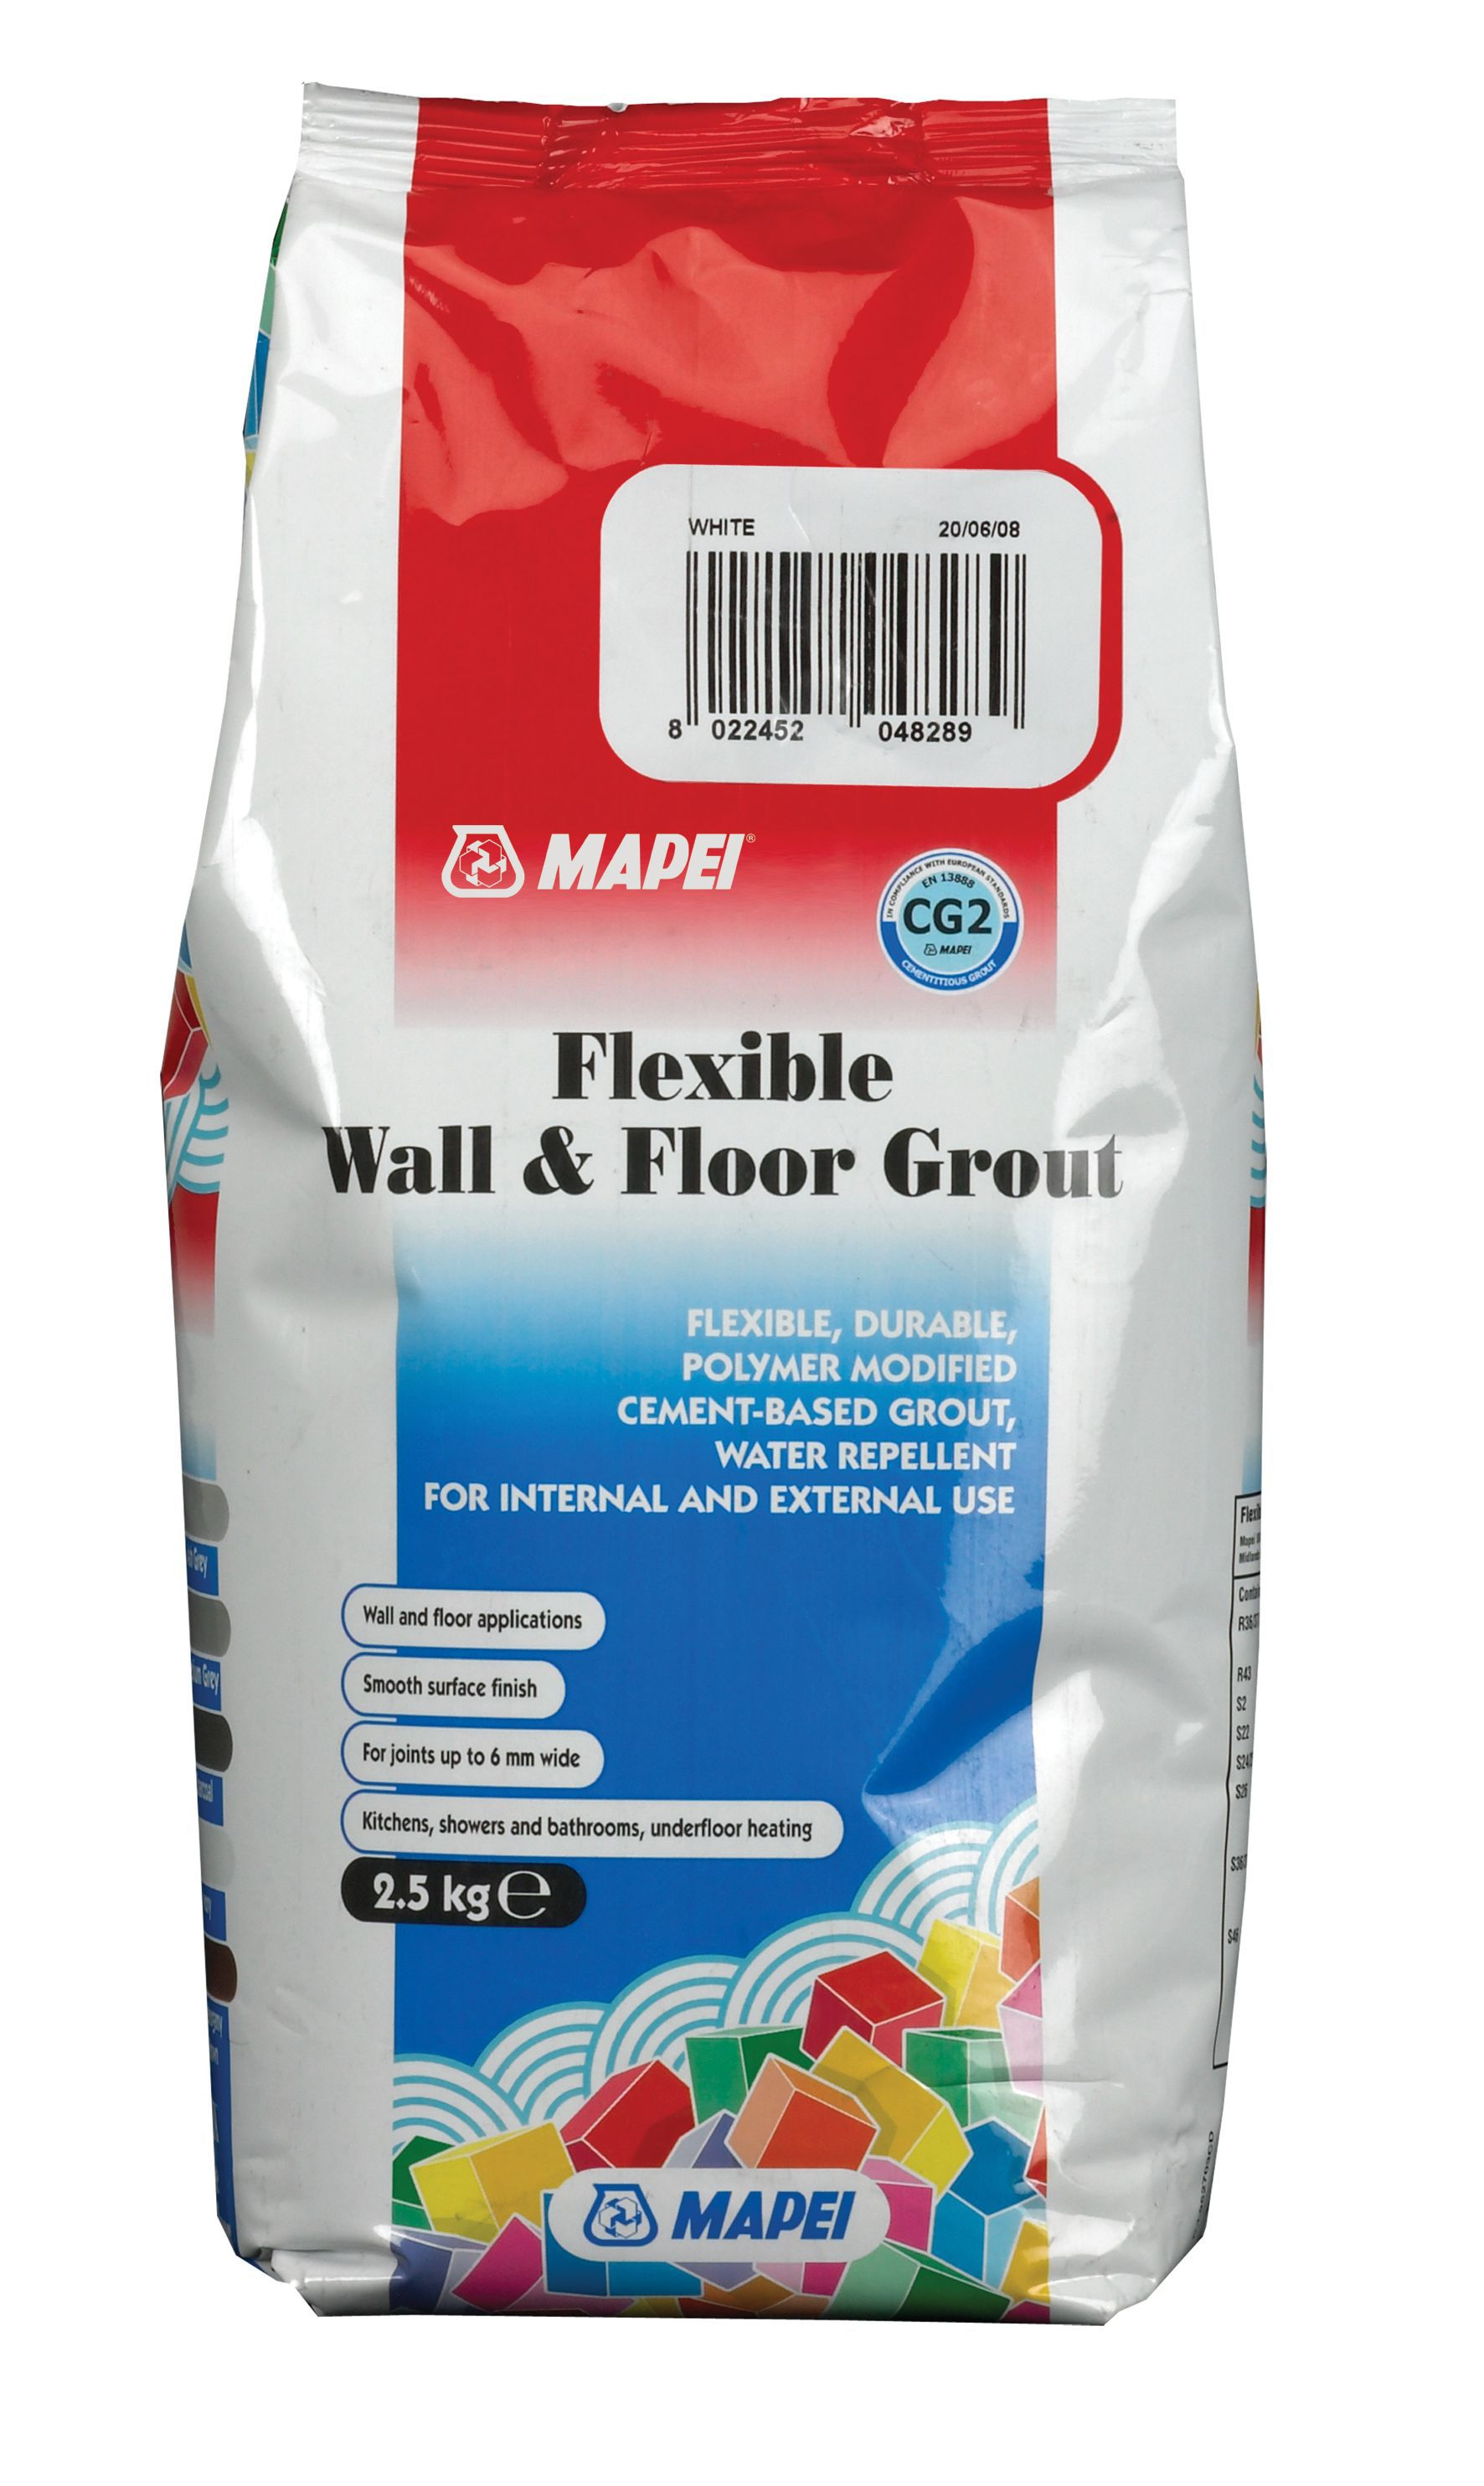 Photo unibond flexible floor tile adhesive images fetching tile flexible floor tile grout imagesnovember leonhouse page 5 dailygadgetfo Images